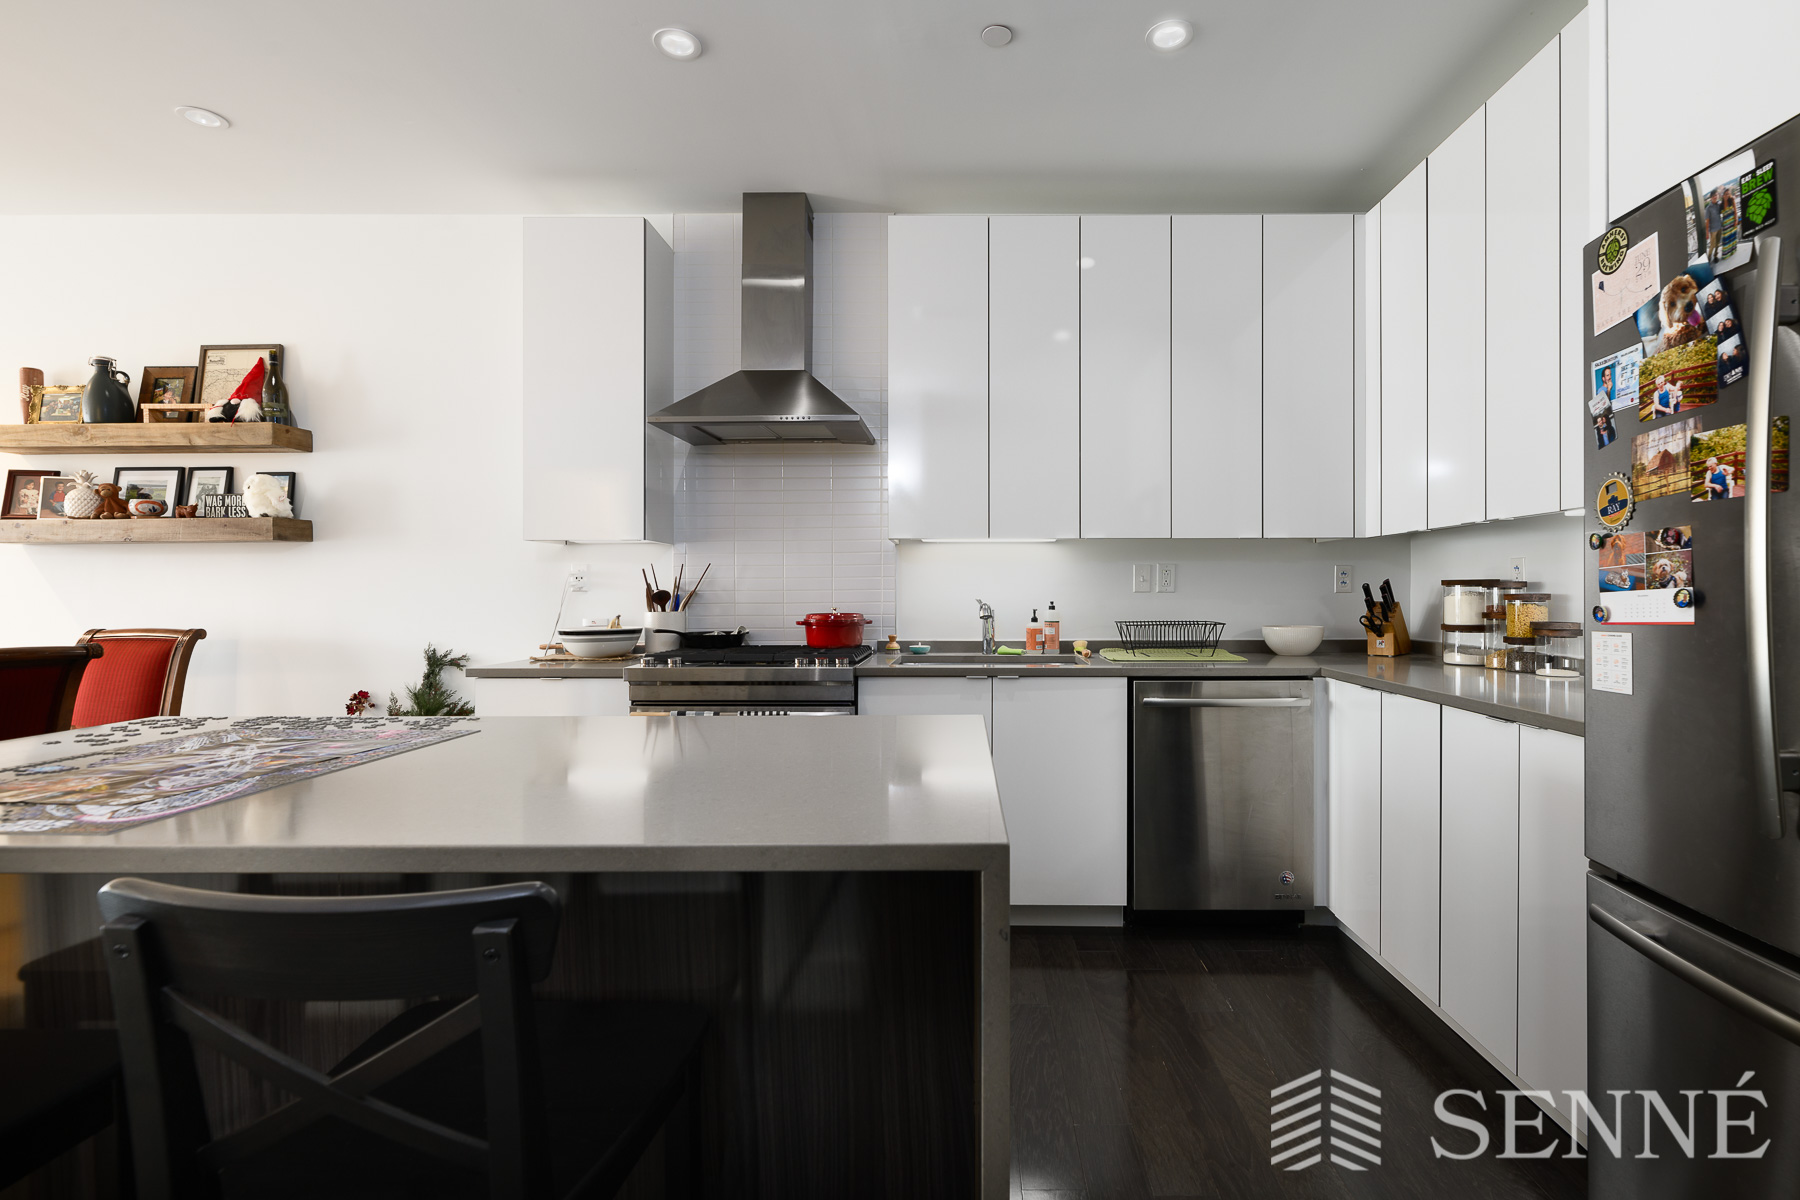 1.5 Beds, 1 Bath apartment in Boston for $3,400